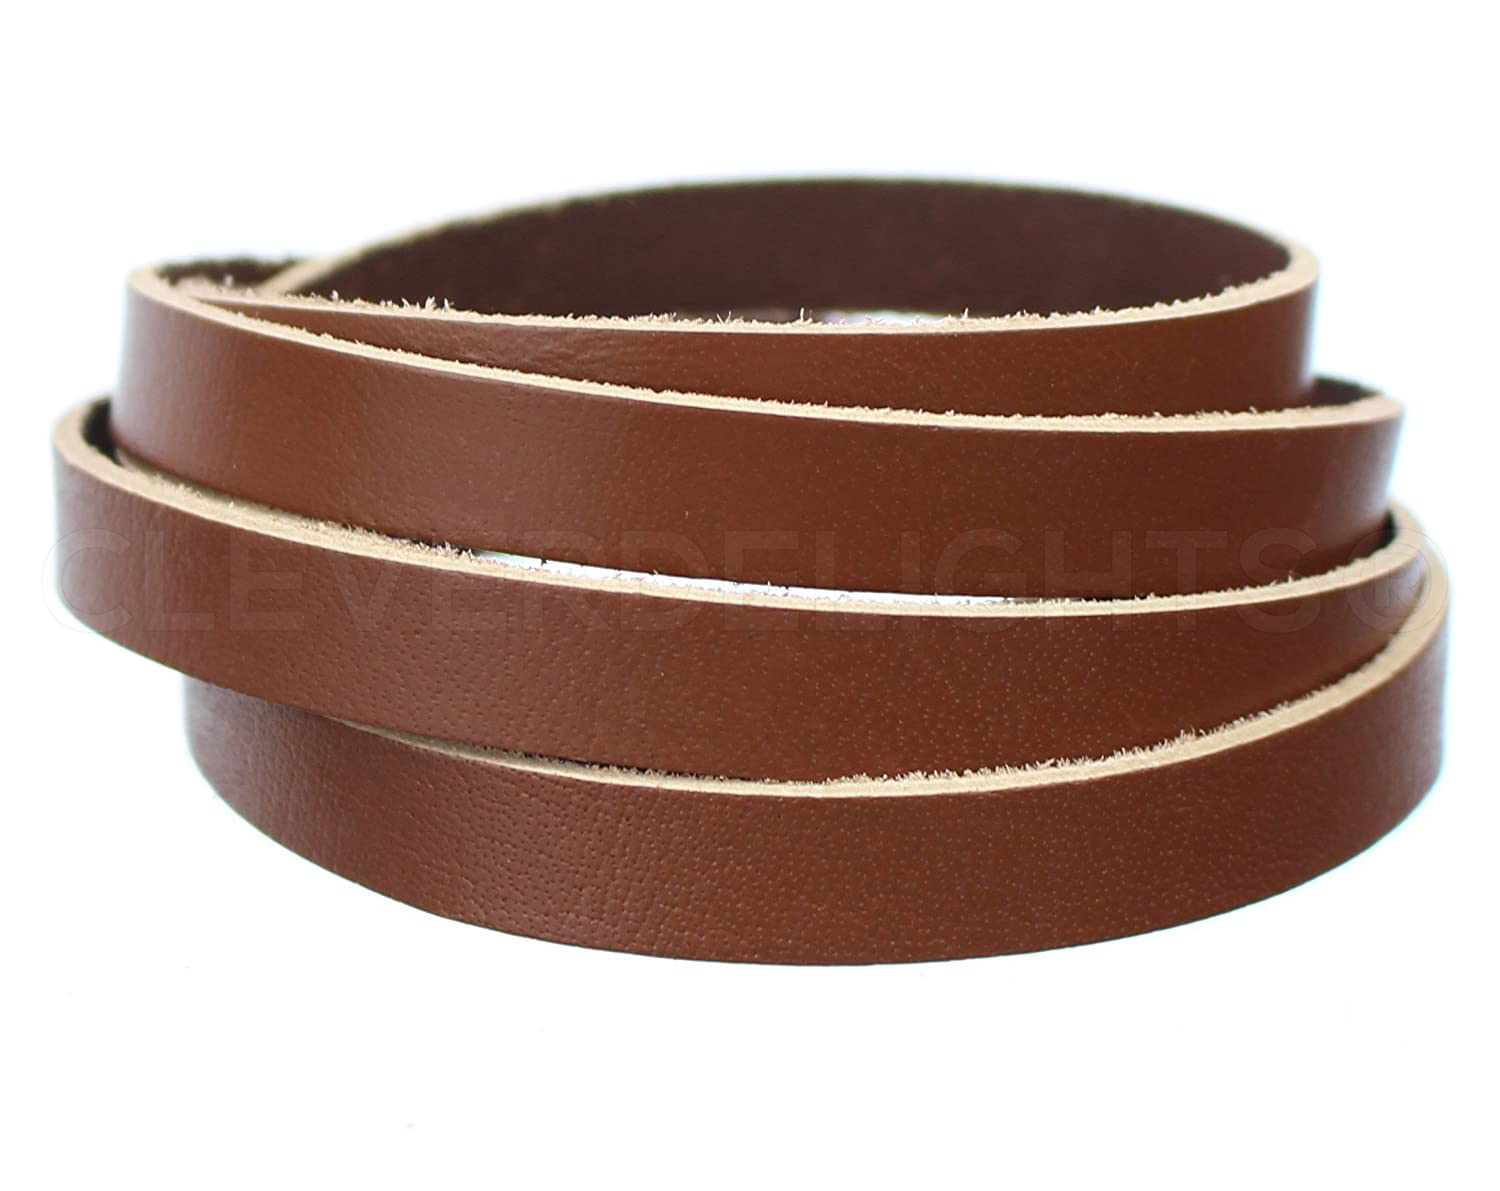 CleverDelights Premium Cowhide Leather Strap Jewelry Supply Craft 1//2 x 84 Brown 5oz Genuine Leather